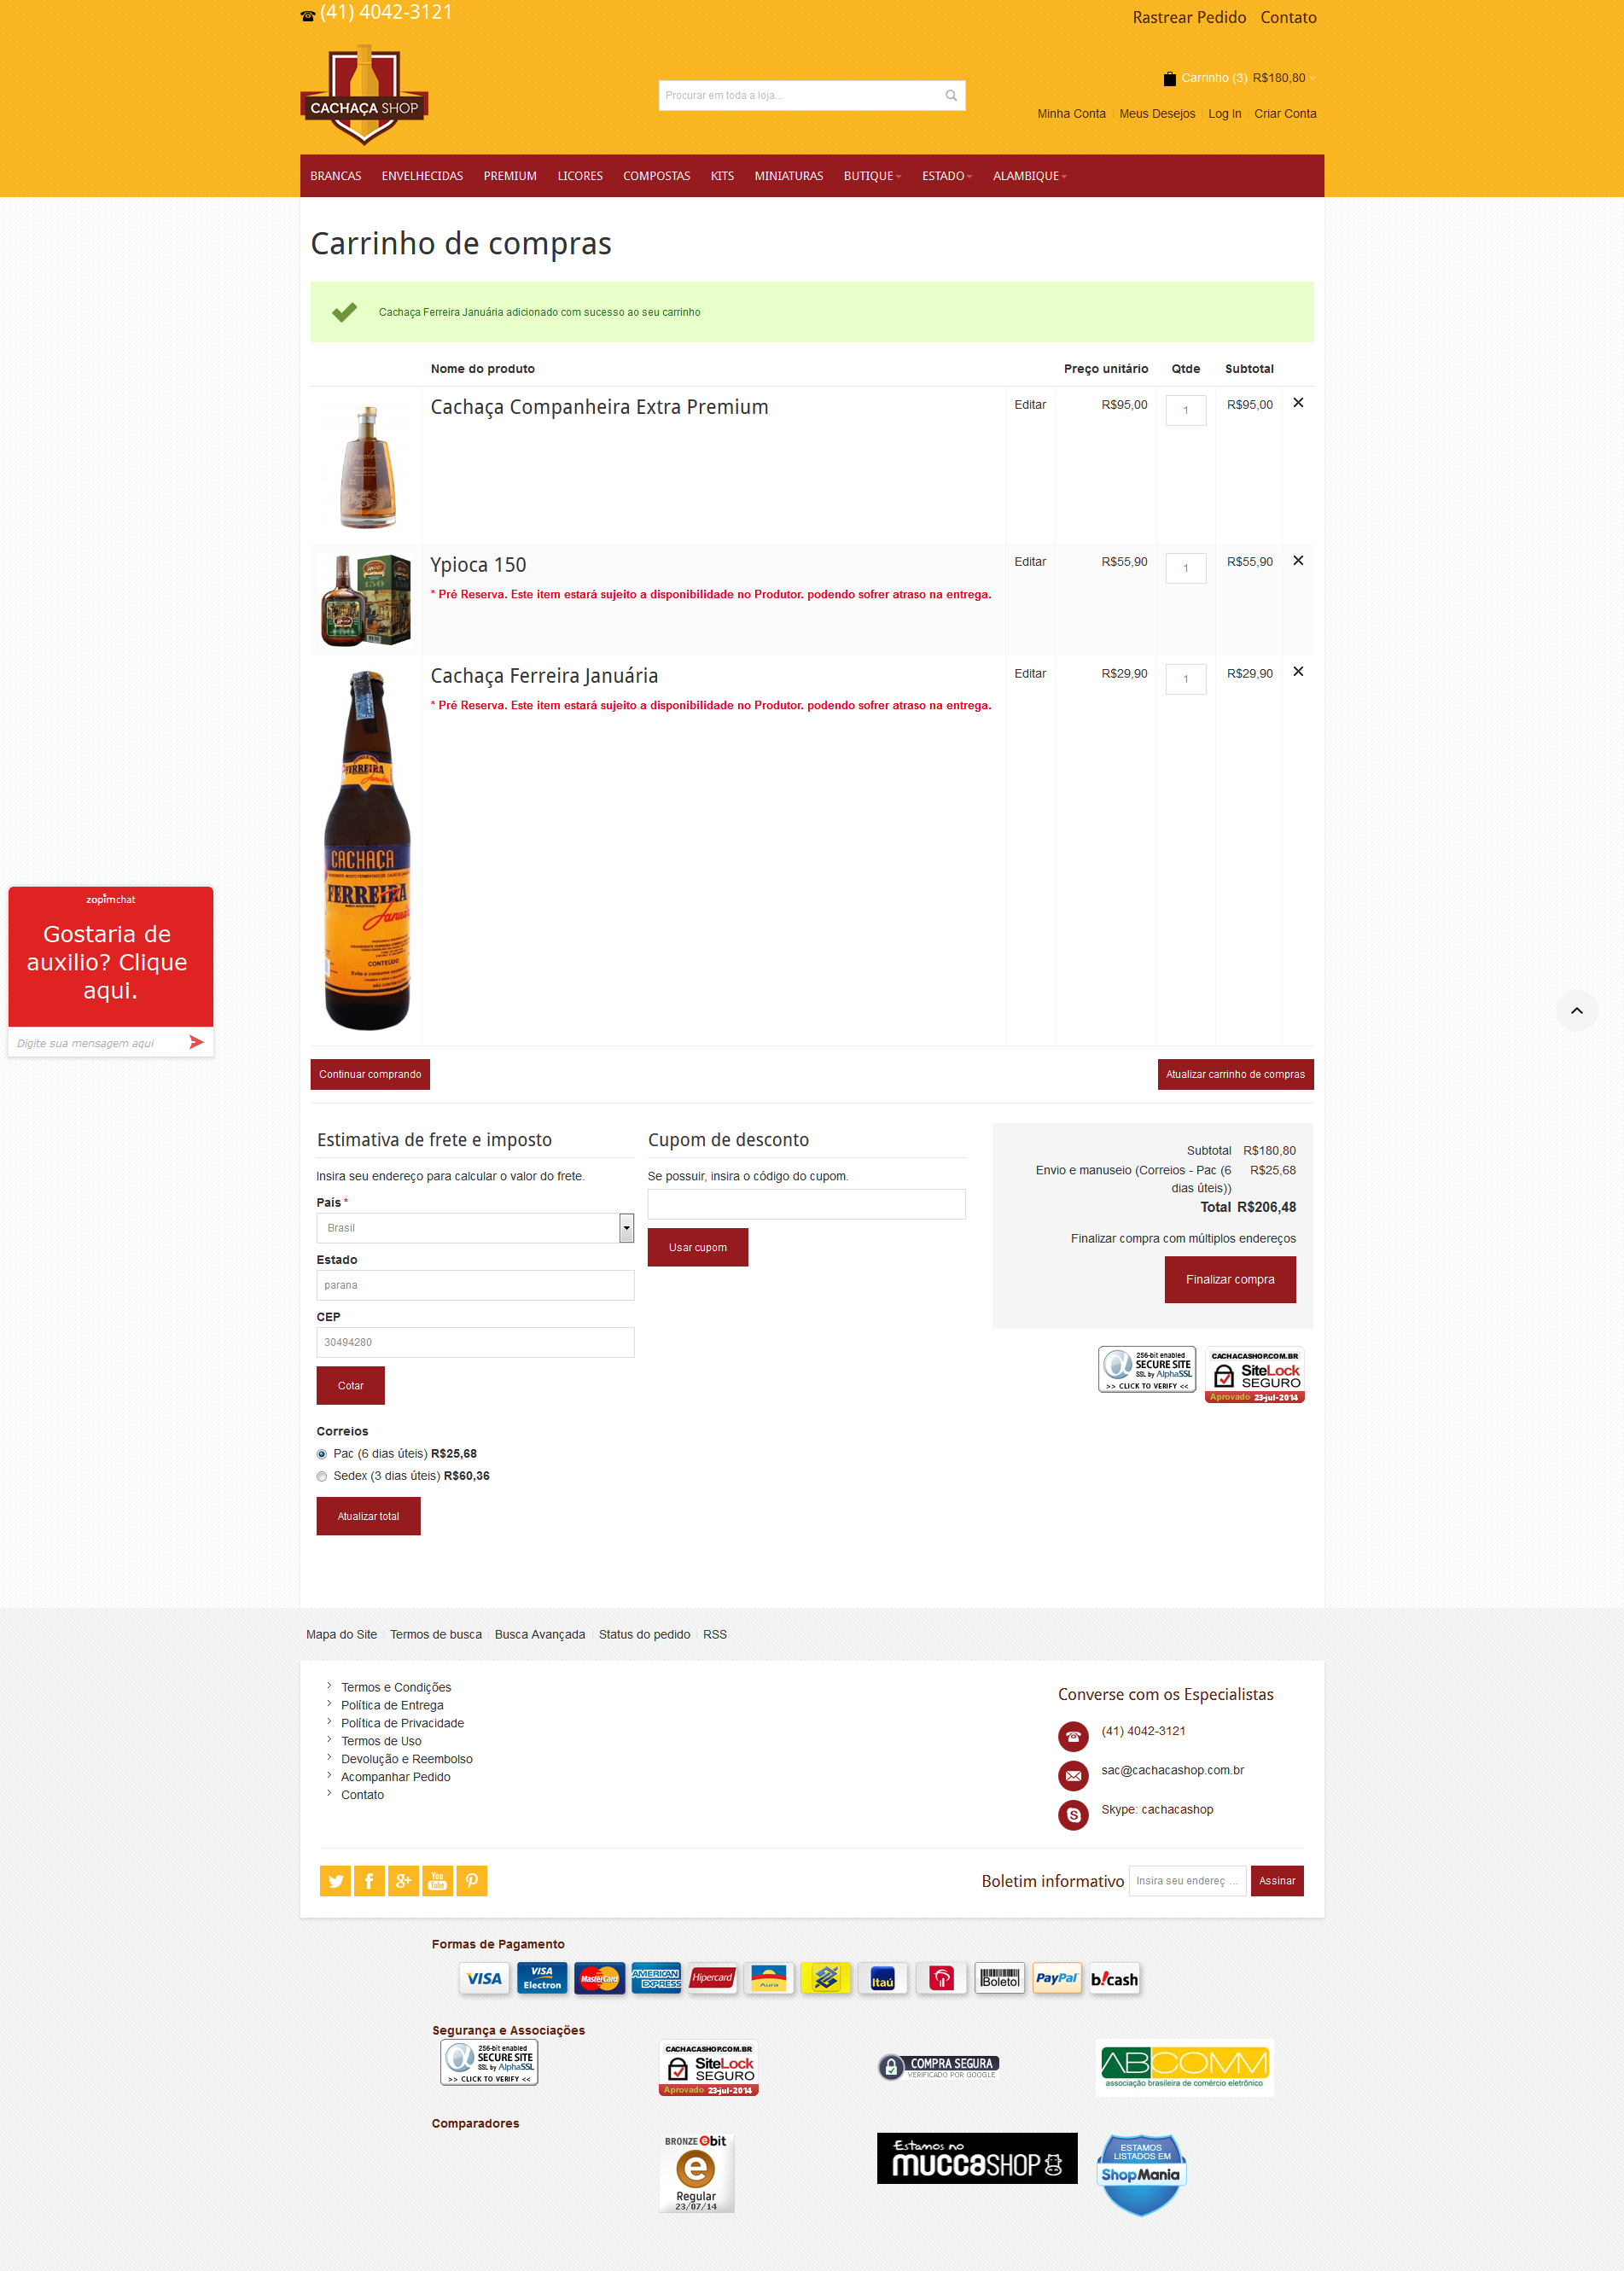 Why the products images is with different sizes in shopping cart?